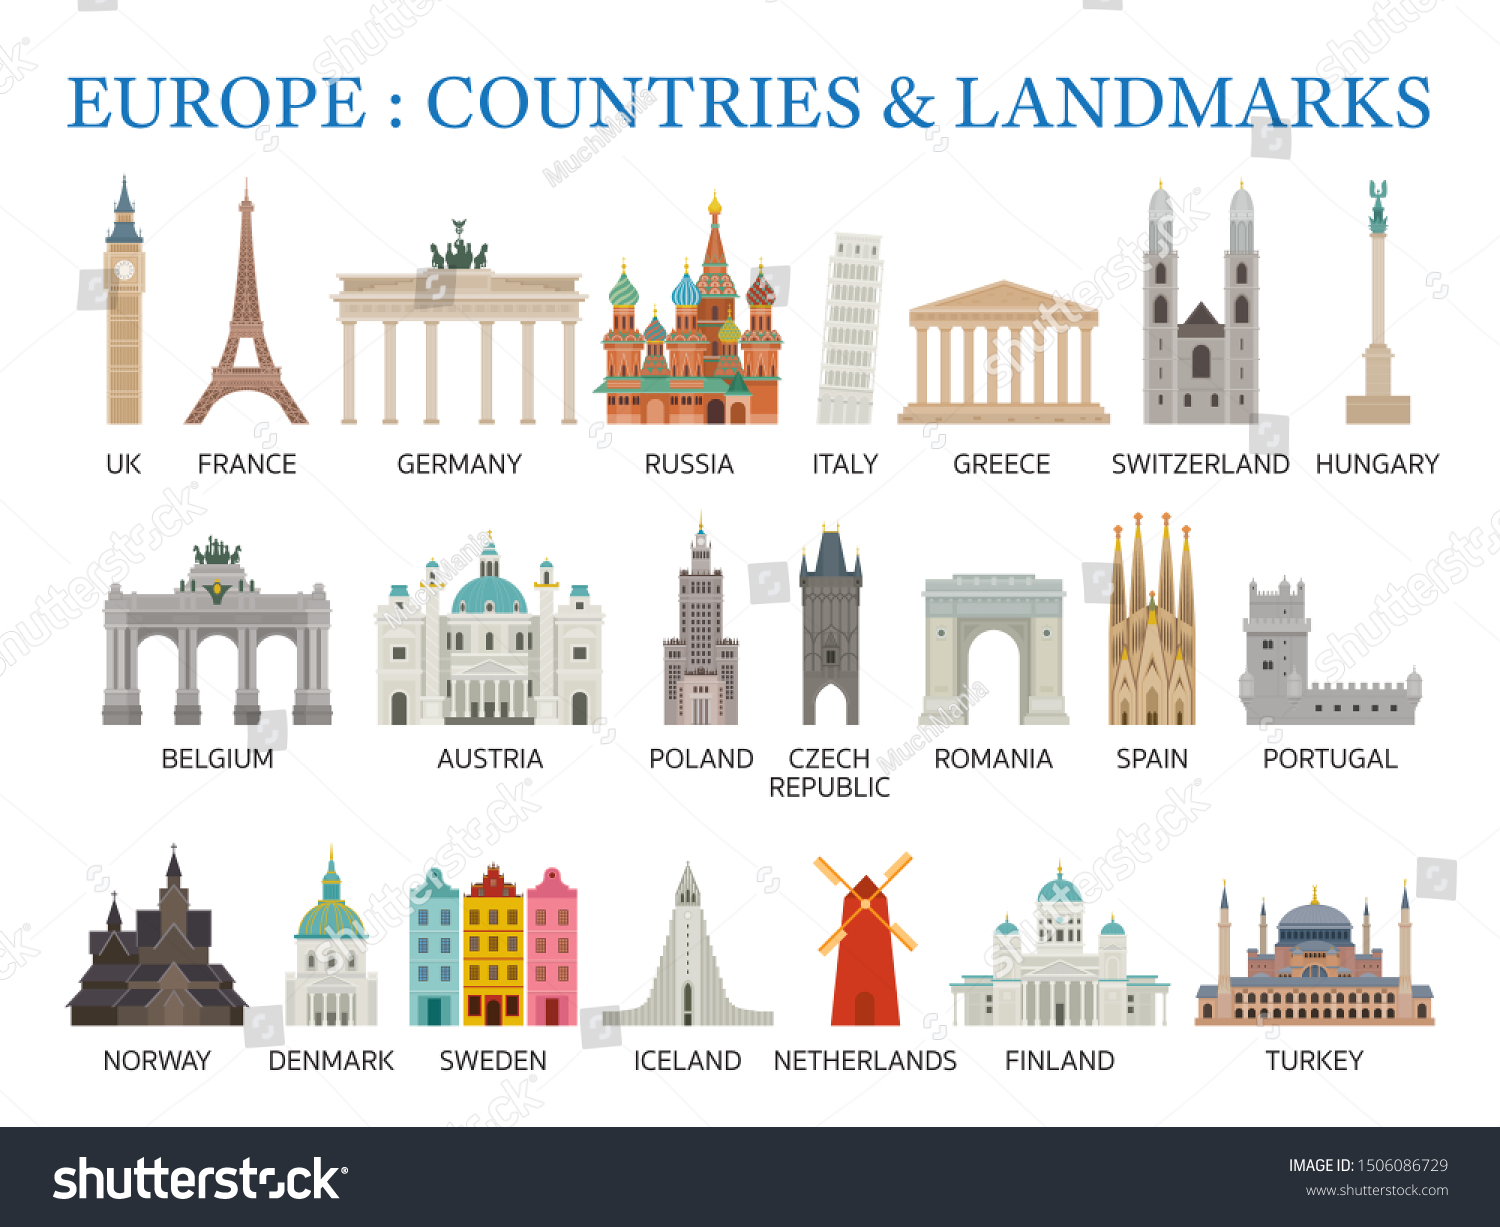 Europe Countries Landmarks in Flat Style, Famous Place and Historical Buildings, Travel and Tourist Attraction